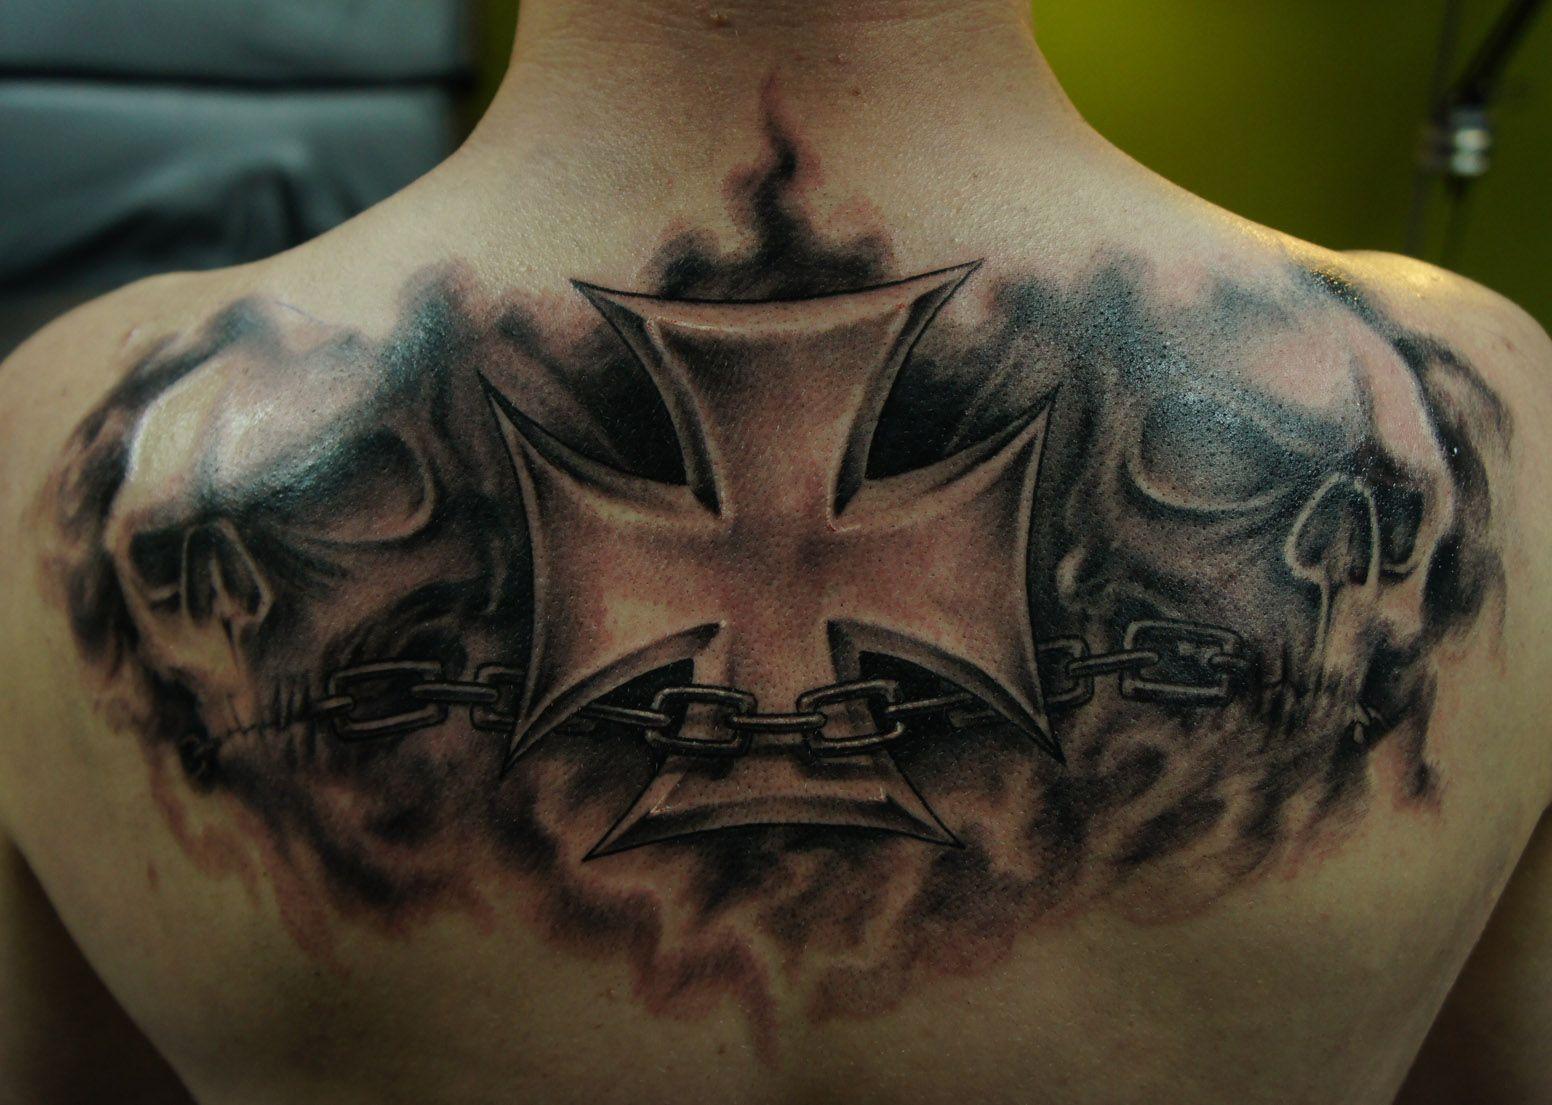 100s Of Iron Cross Tattoo Design Ideas Pictures Gallery Iron with regard to measurements 1552 X 1105